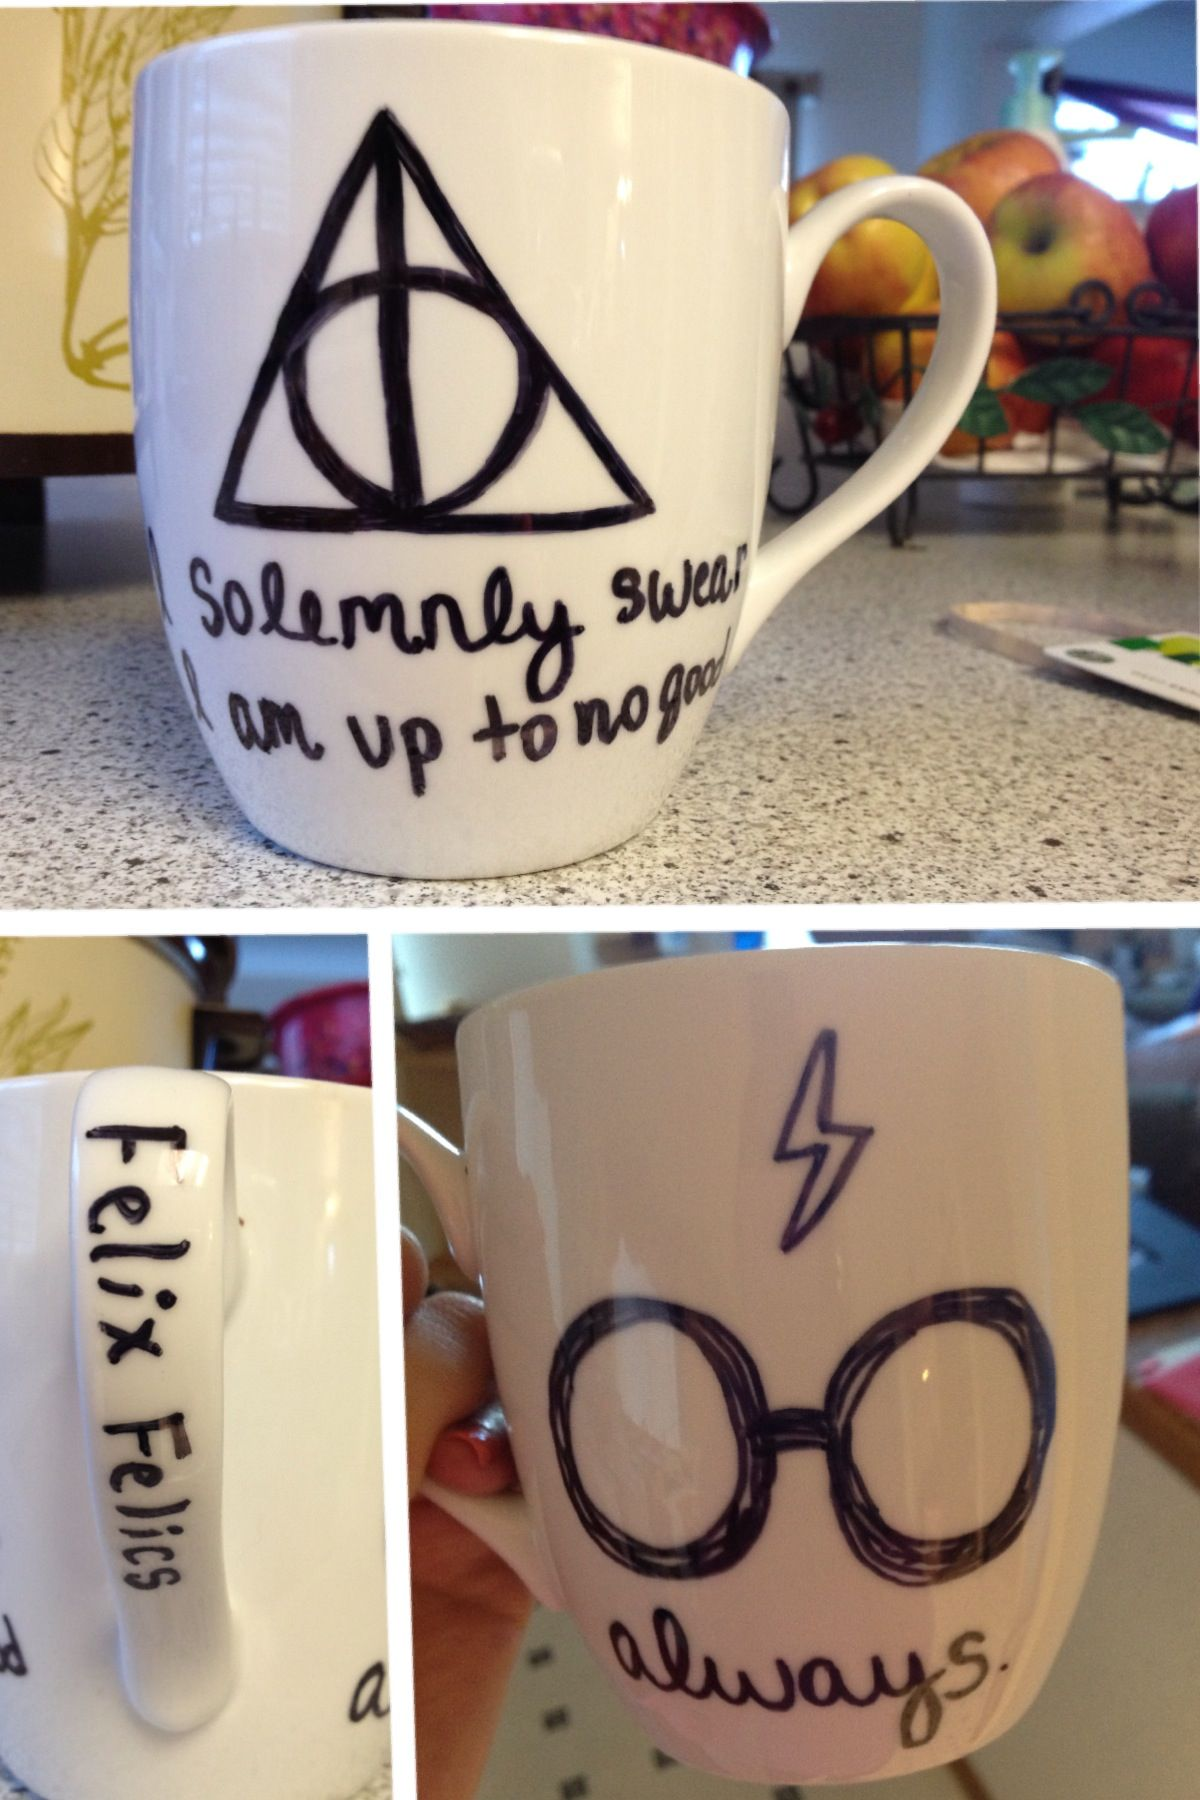 Harry potter diy sharpie mug bake at 425 for 30 minutes and then jens gift harry potter diy sharpie mug bake at 425 for 30 minutes and then use clear nail polish to keep design from flaking solutioingenieria Image collections